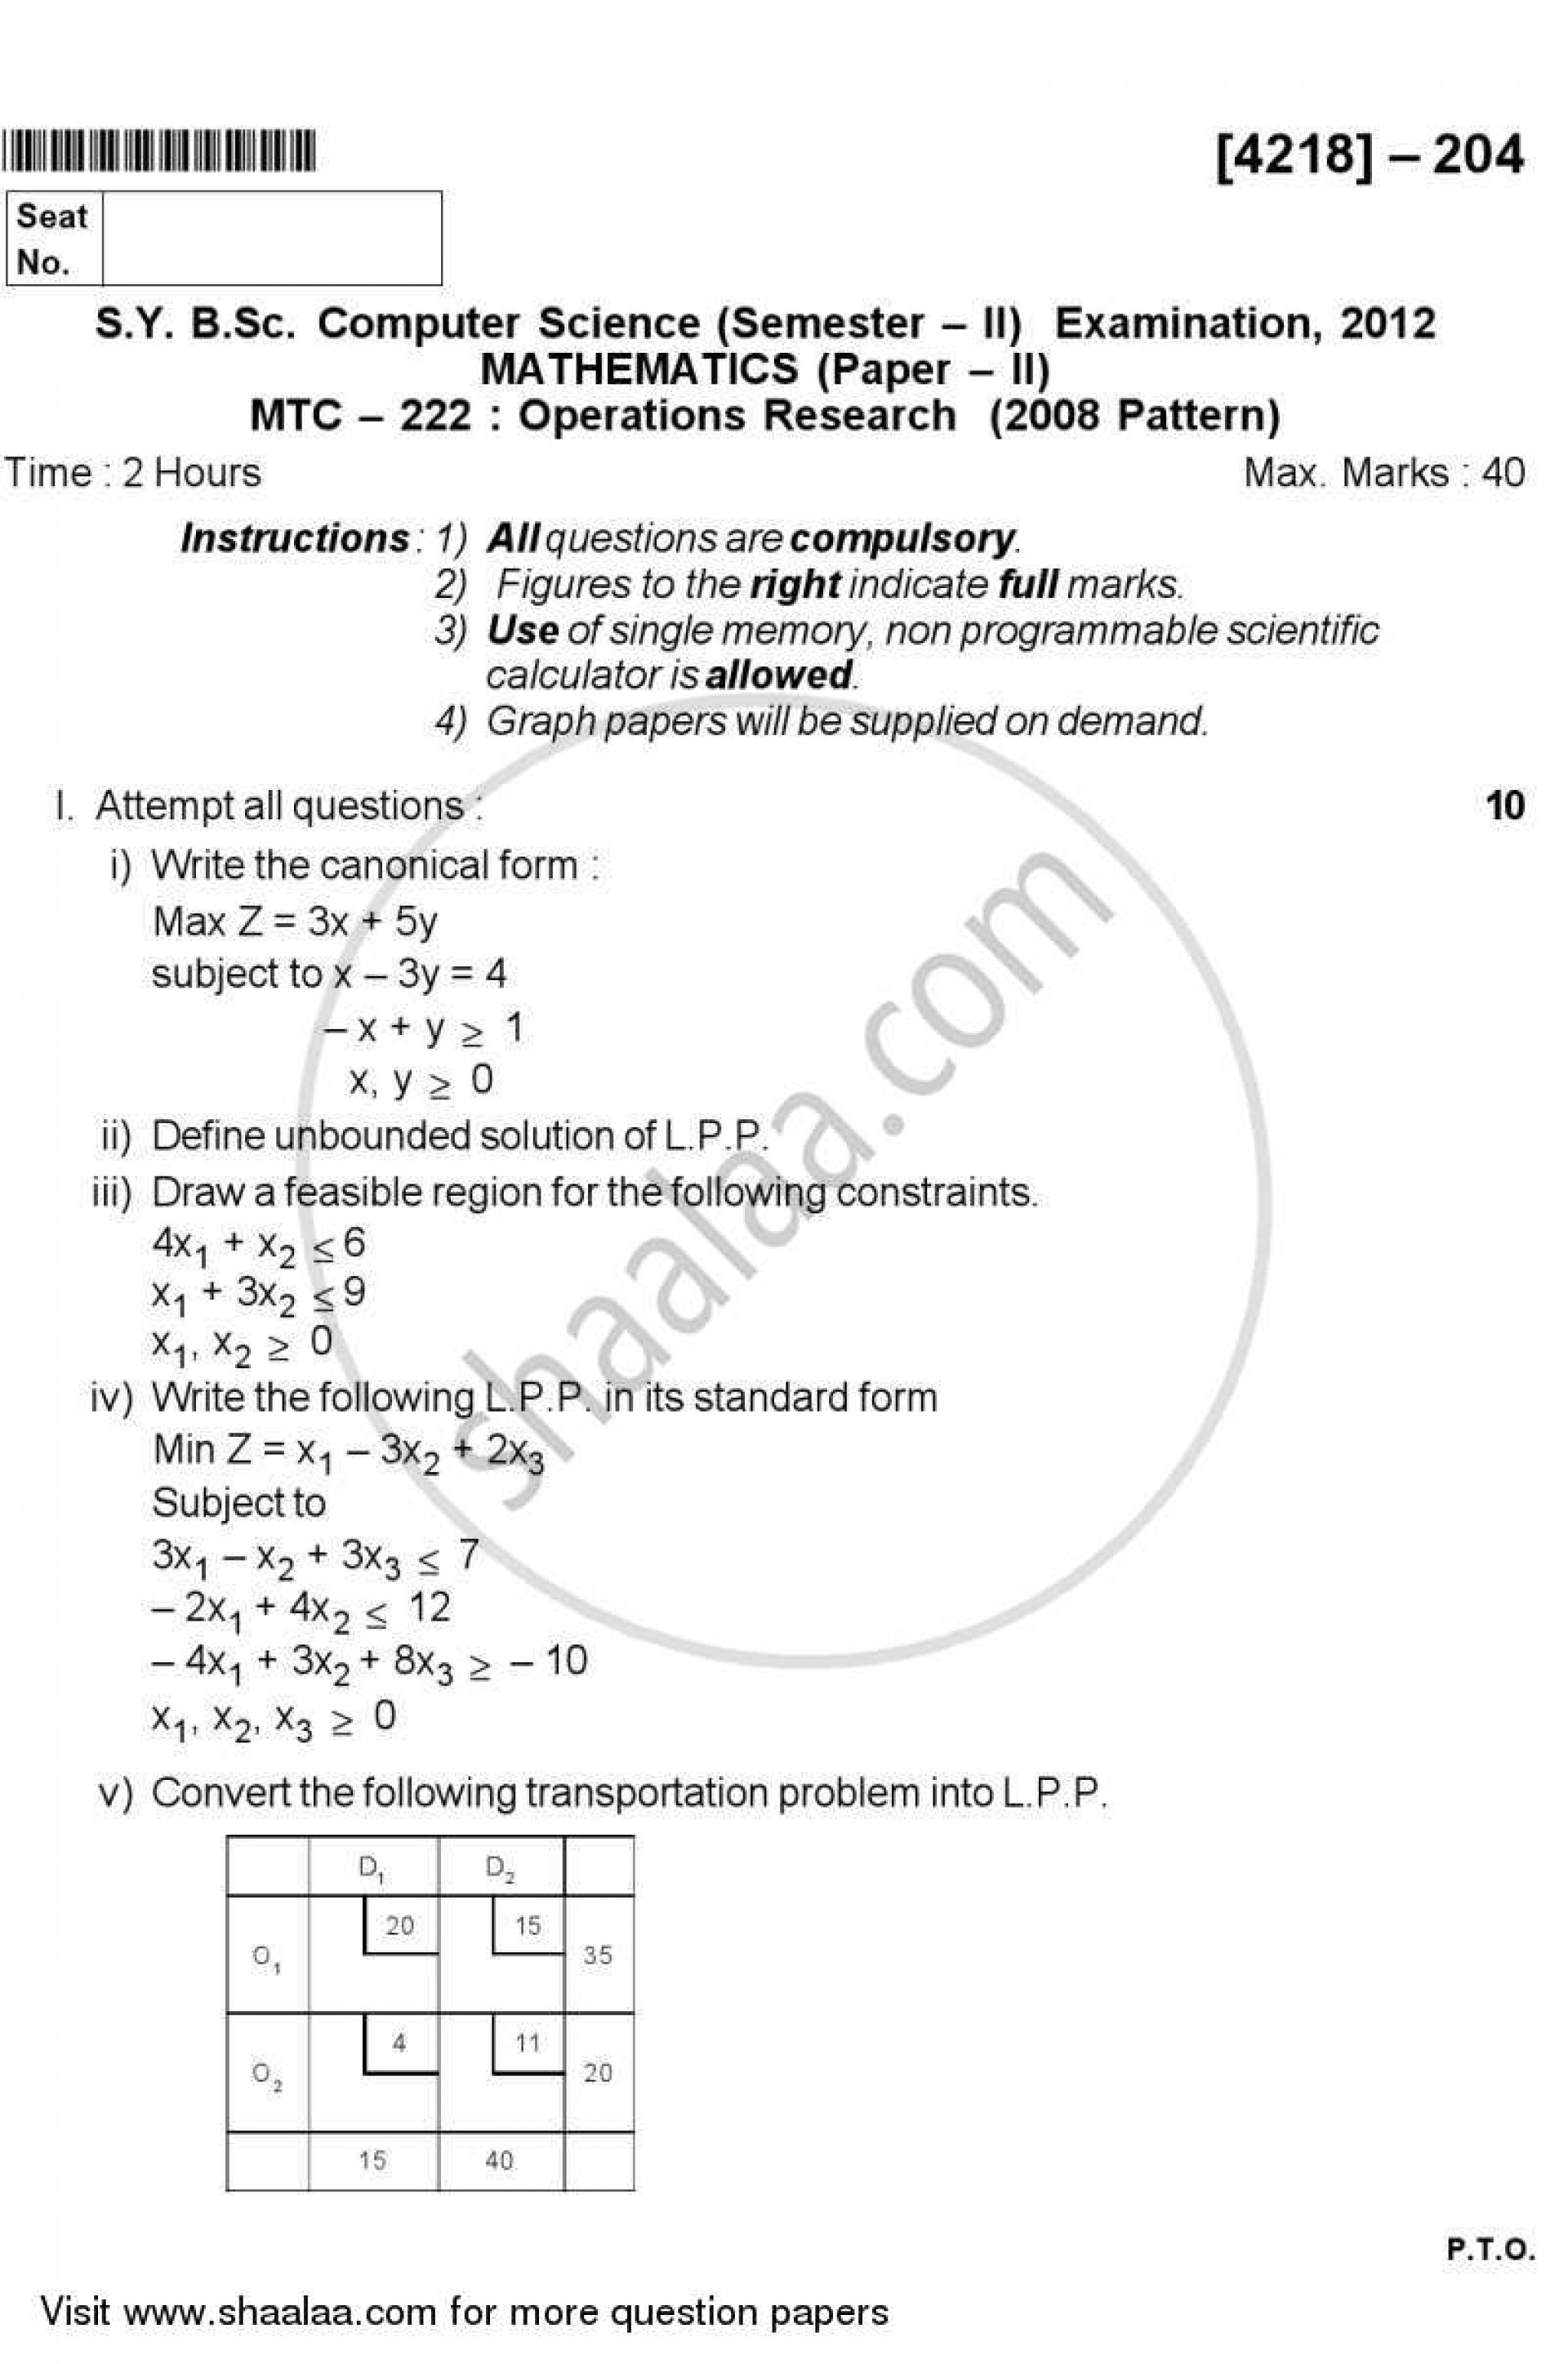 009 Computer Science Research Papers Download Paper University Of Pune Bachelor Bsc Operations Sybsc Mathematics Semester 2013 2f7cdeeceb4ce4f07837cc05dd5 Fascinating Pdf Free Ieee 1920